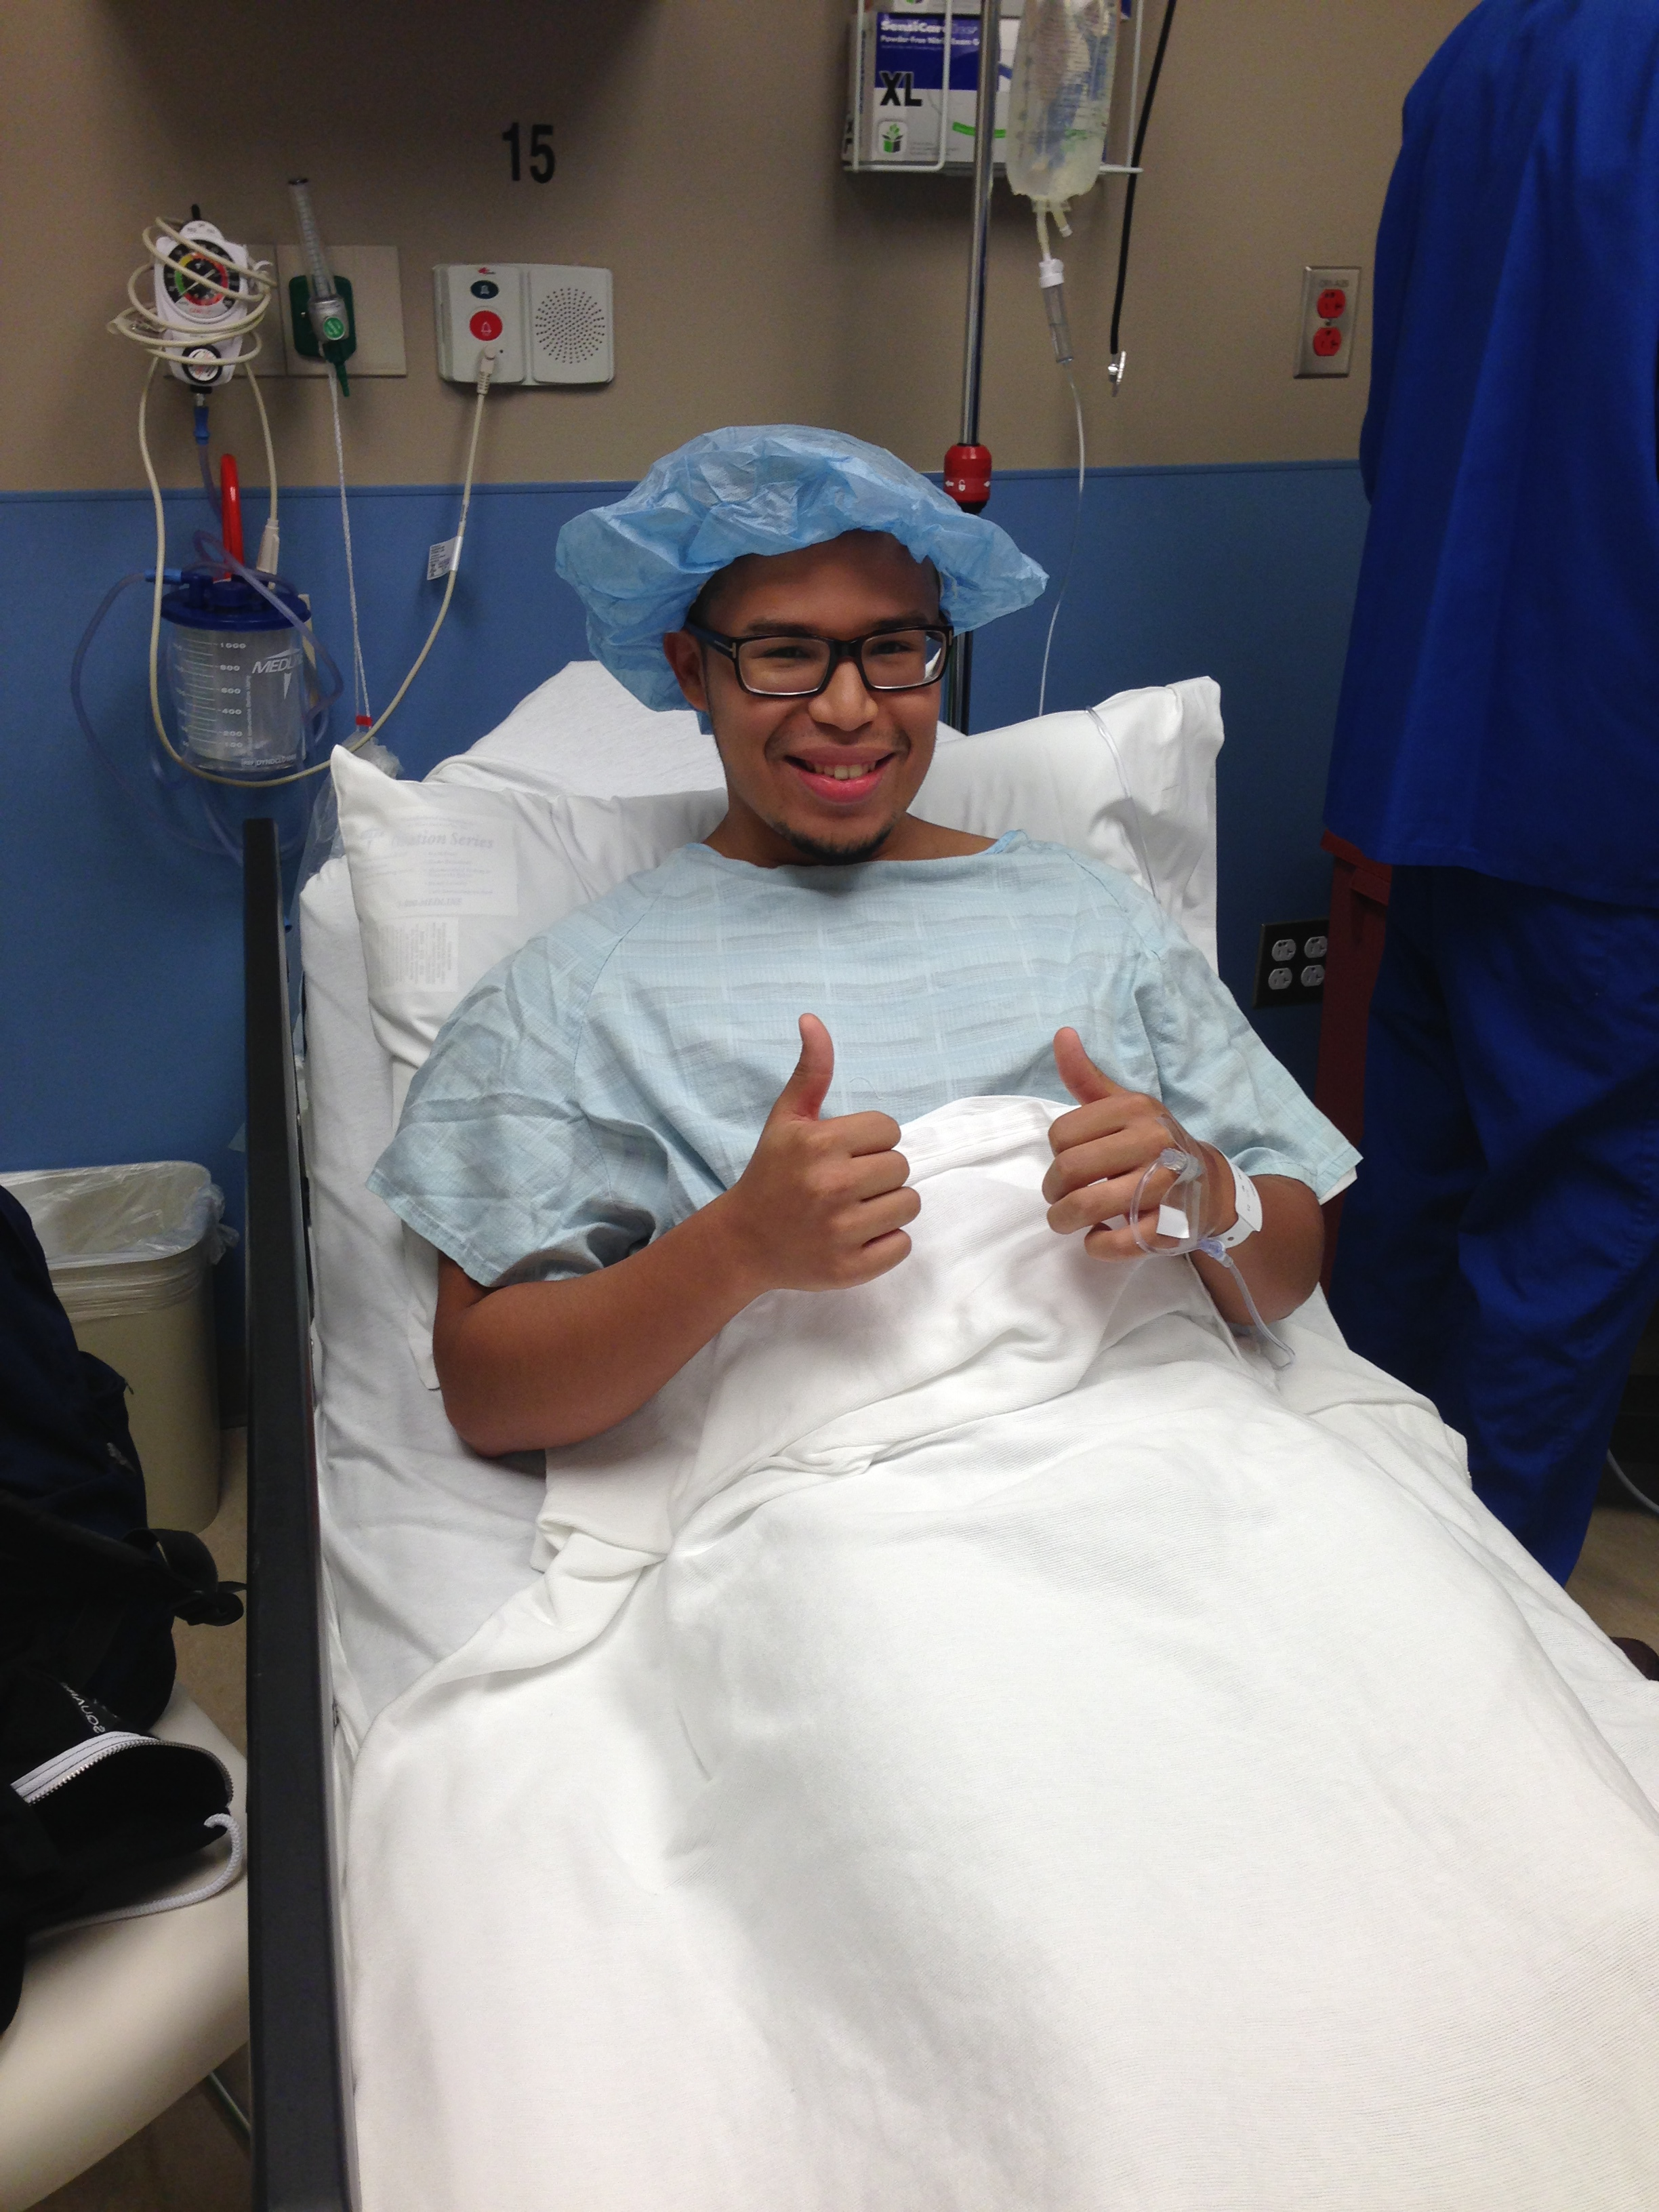 Ron getting ready for surgery